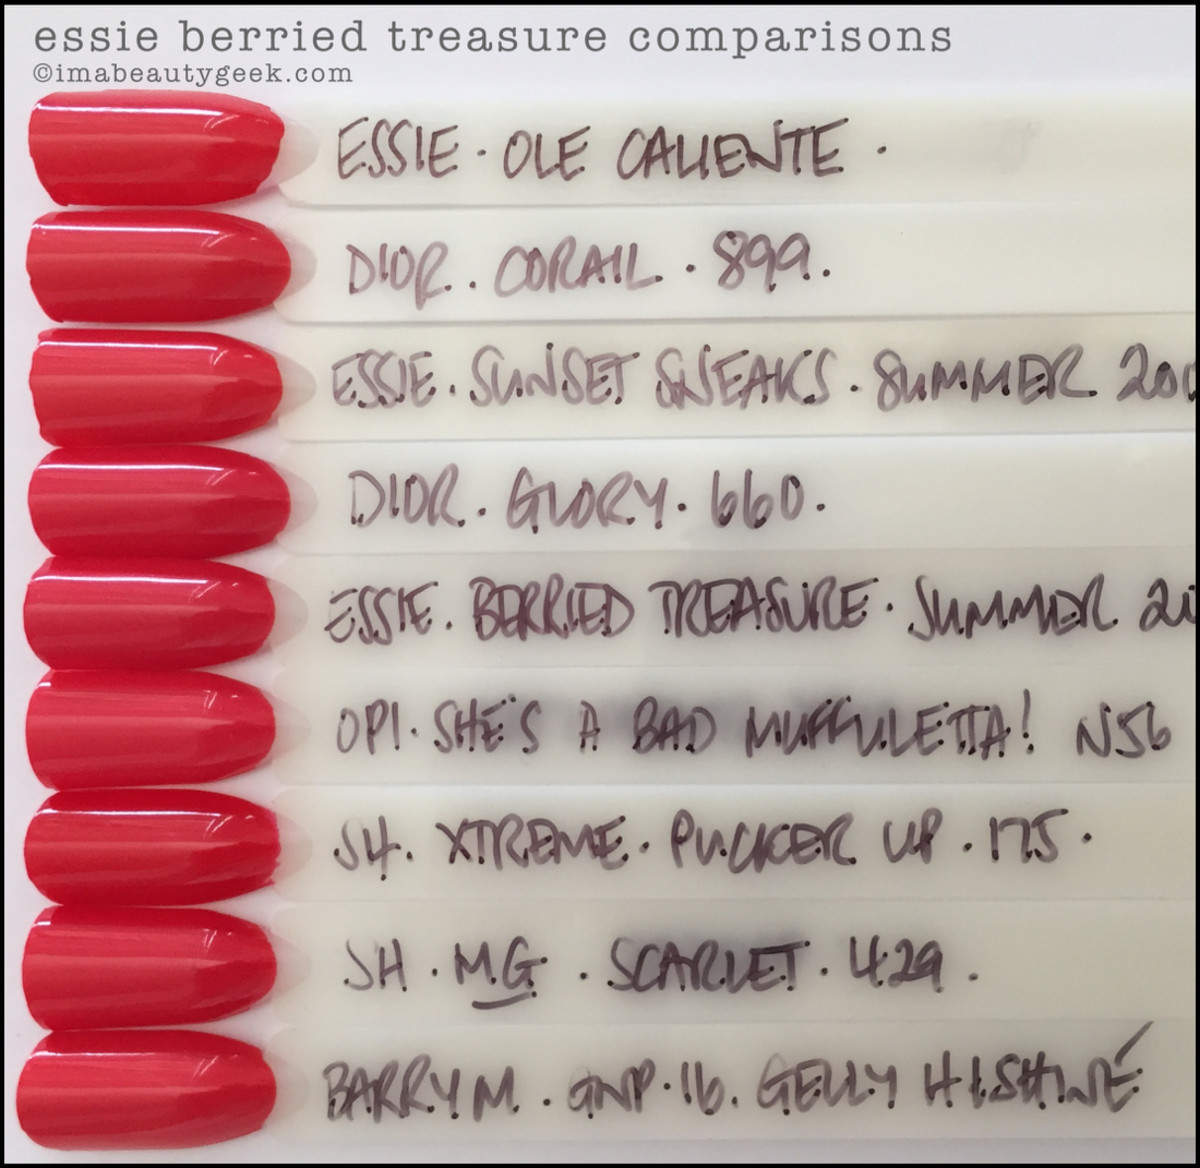 Essie Berried Treasure Comparison Swatches Dupes_Essie Summer 2016